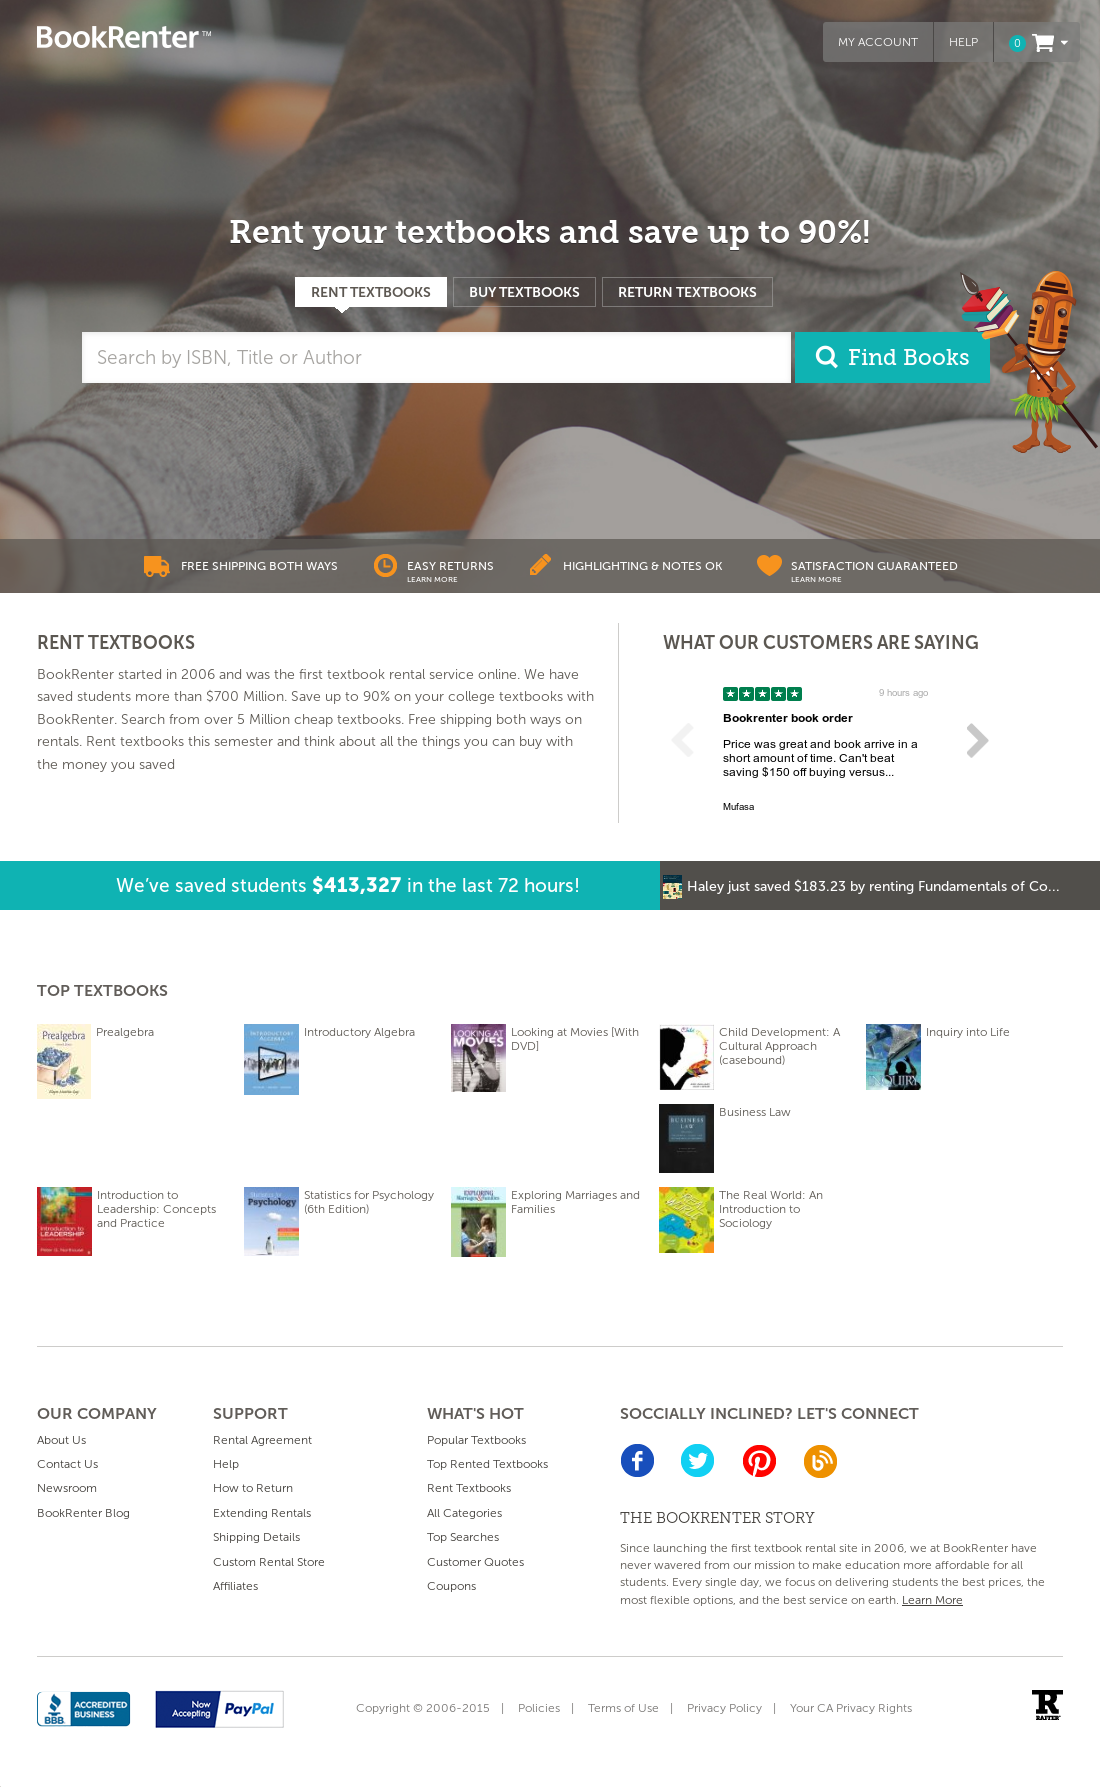 Using Direct textbook to hunt for a new or used textbook is a three step process. Simply search for a book, browse through the search results, and then visit any of the stores that the site taps to buy or rent your textbook.